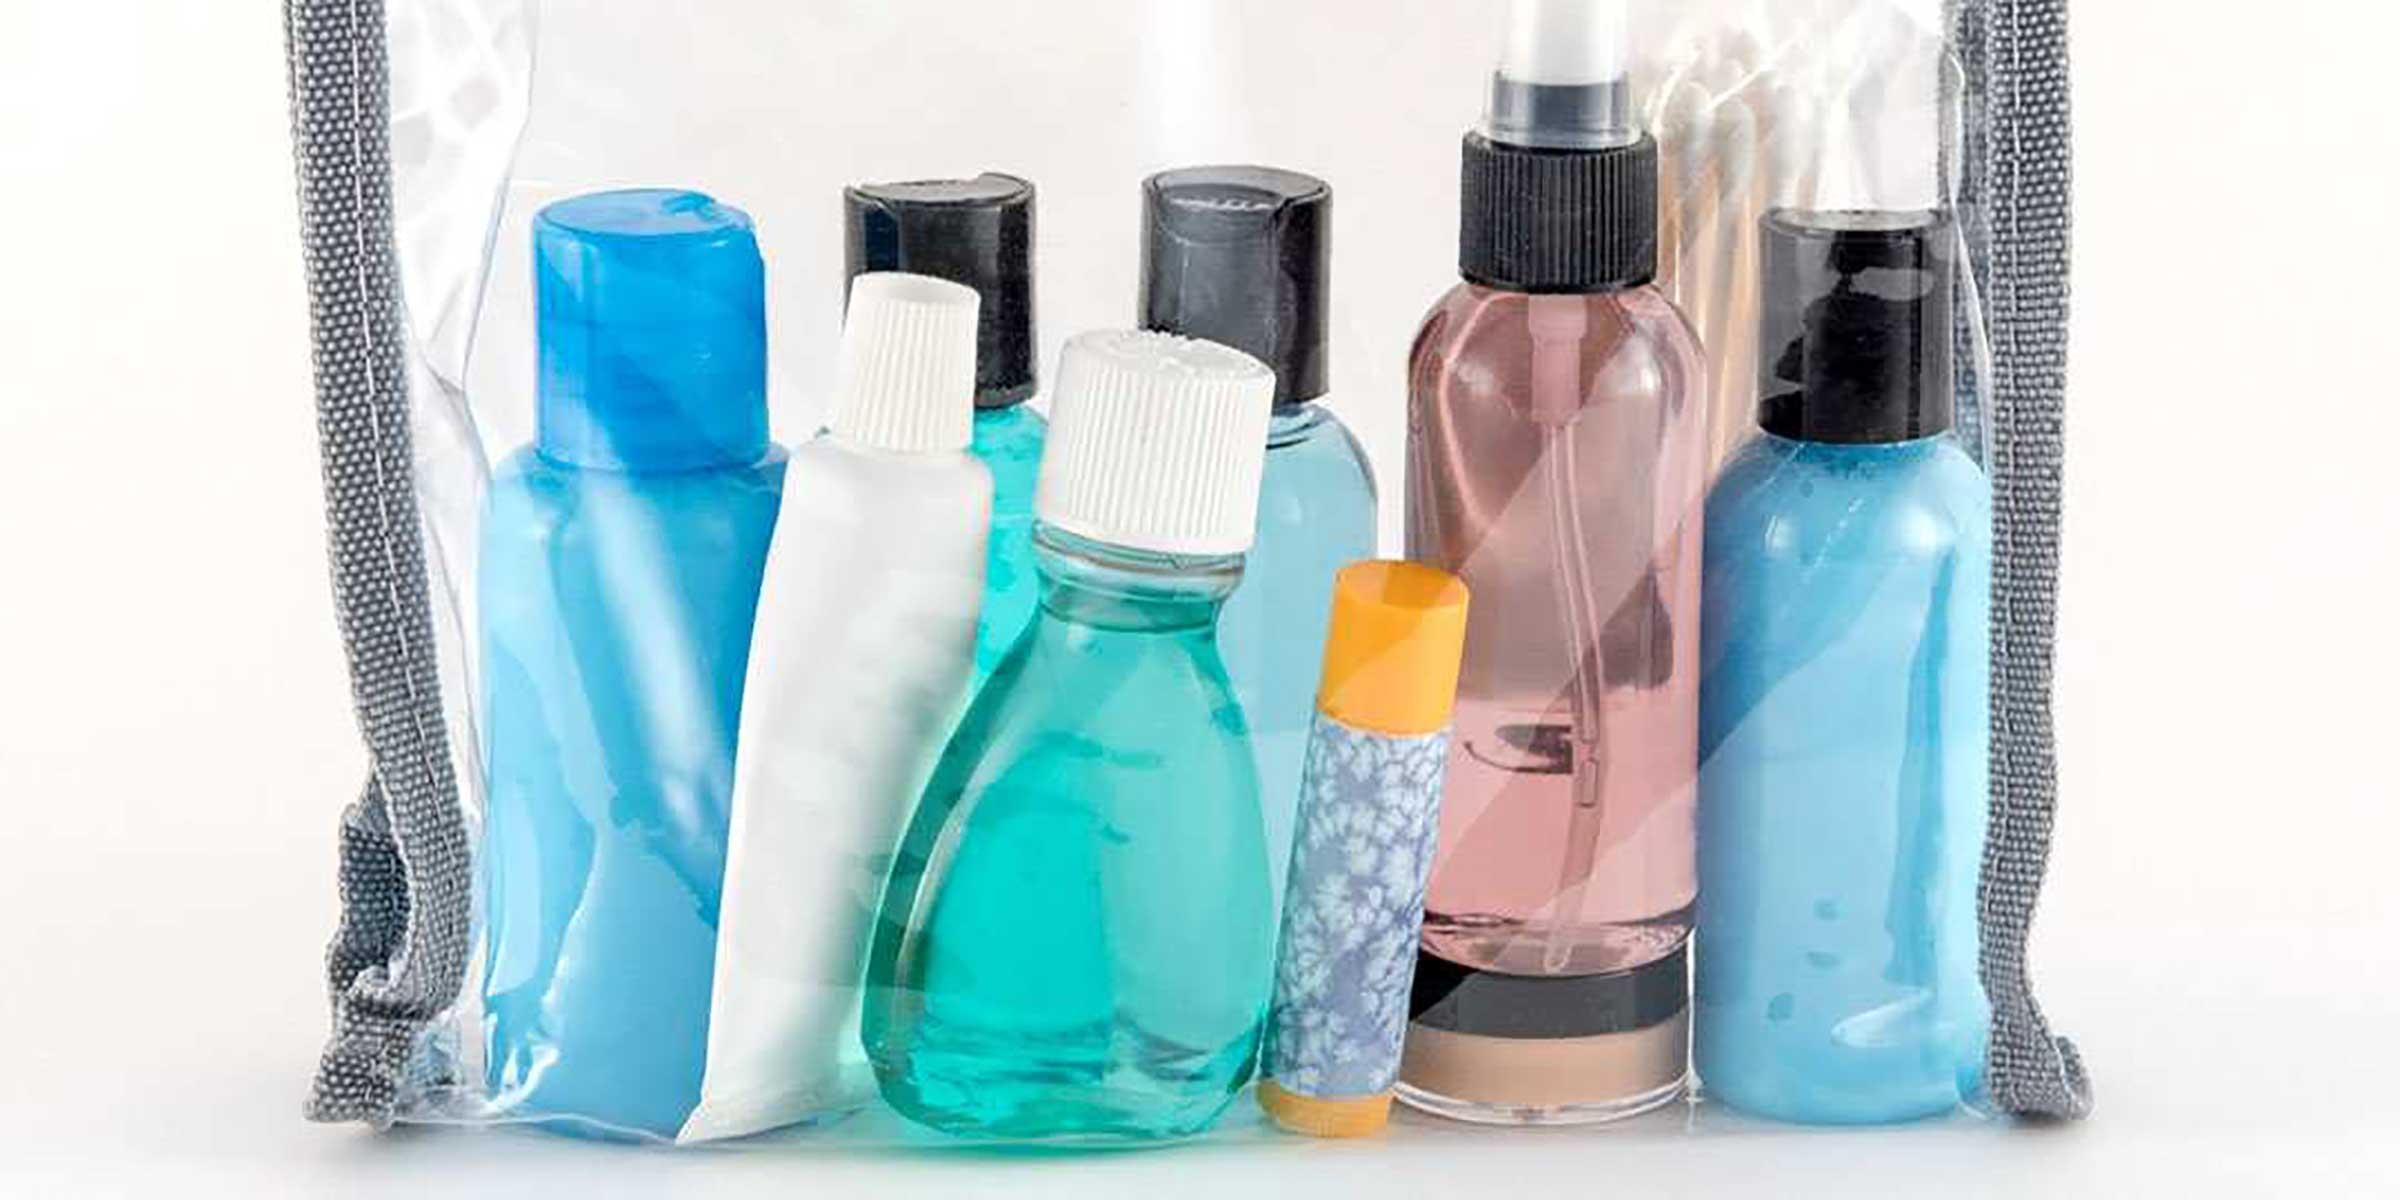 Toiletries to pack for Caribbean vacation